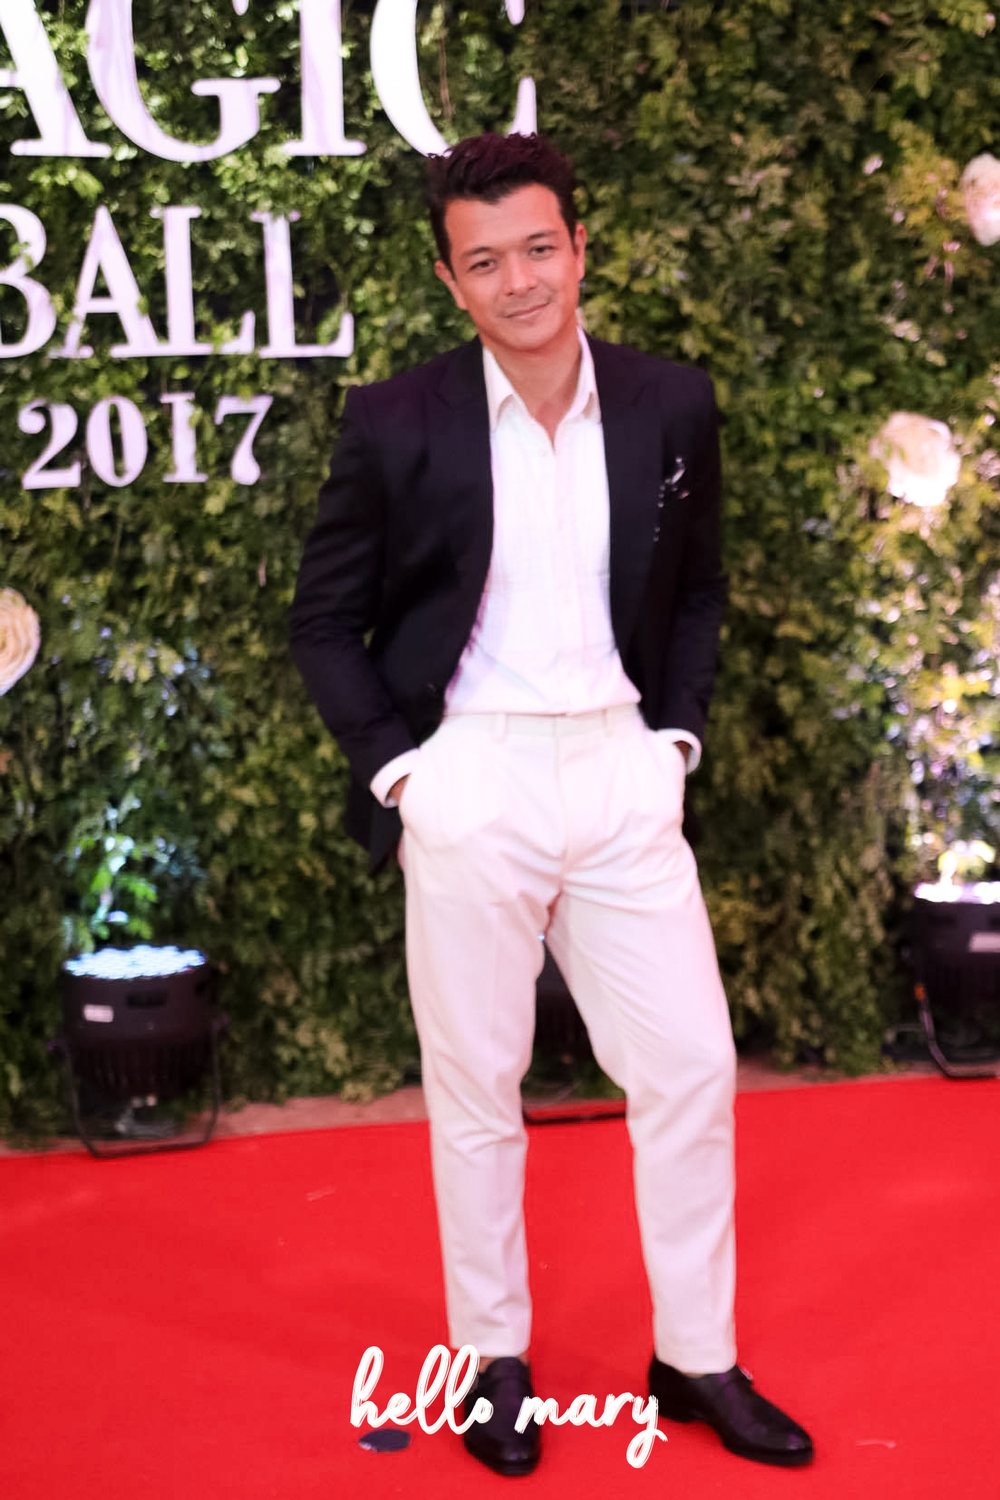 Jericho Rosales - Trust Echo to go to the Star Magic Ball in a laid back outfit and still look damn good.